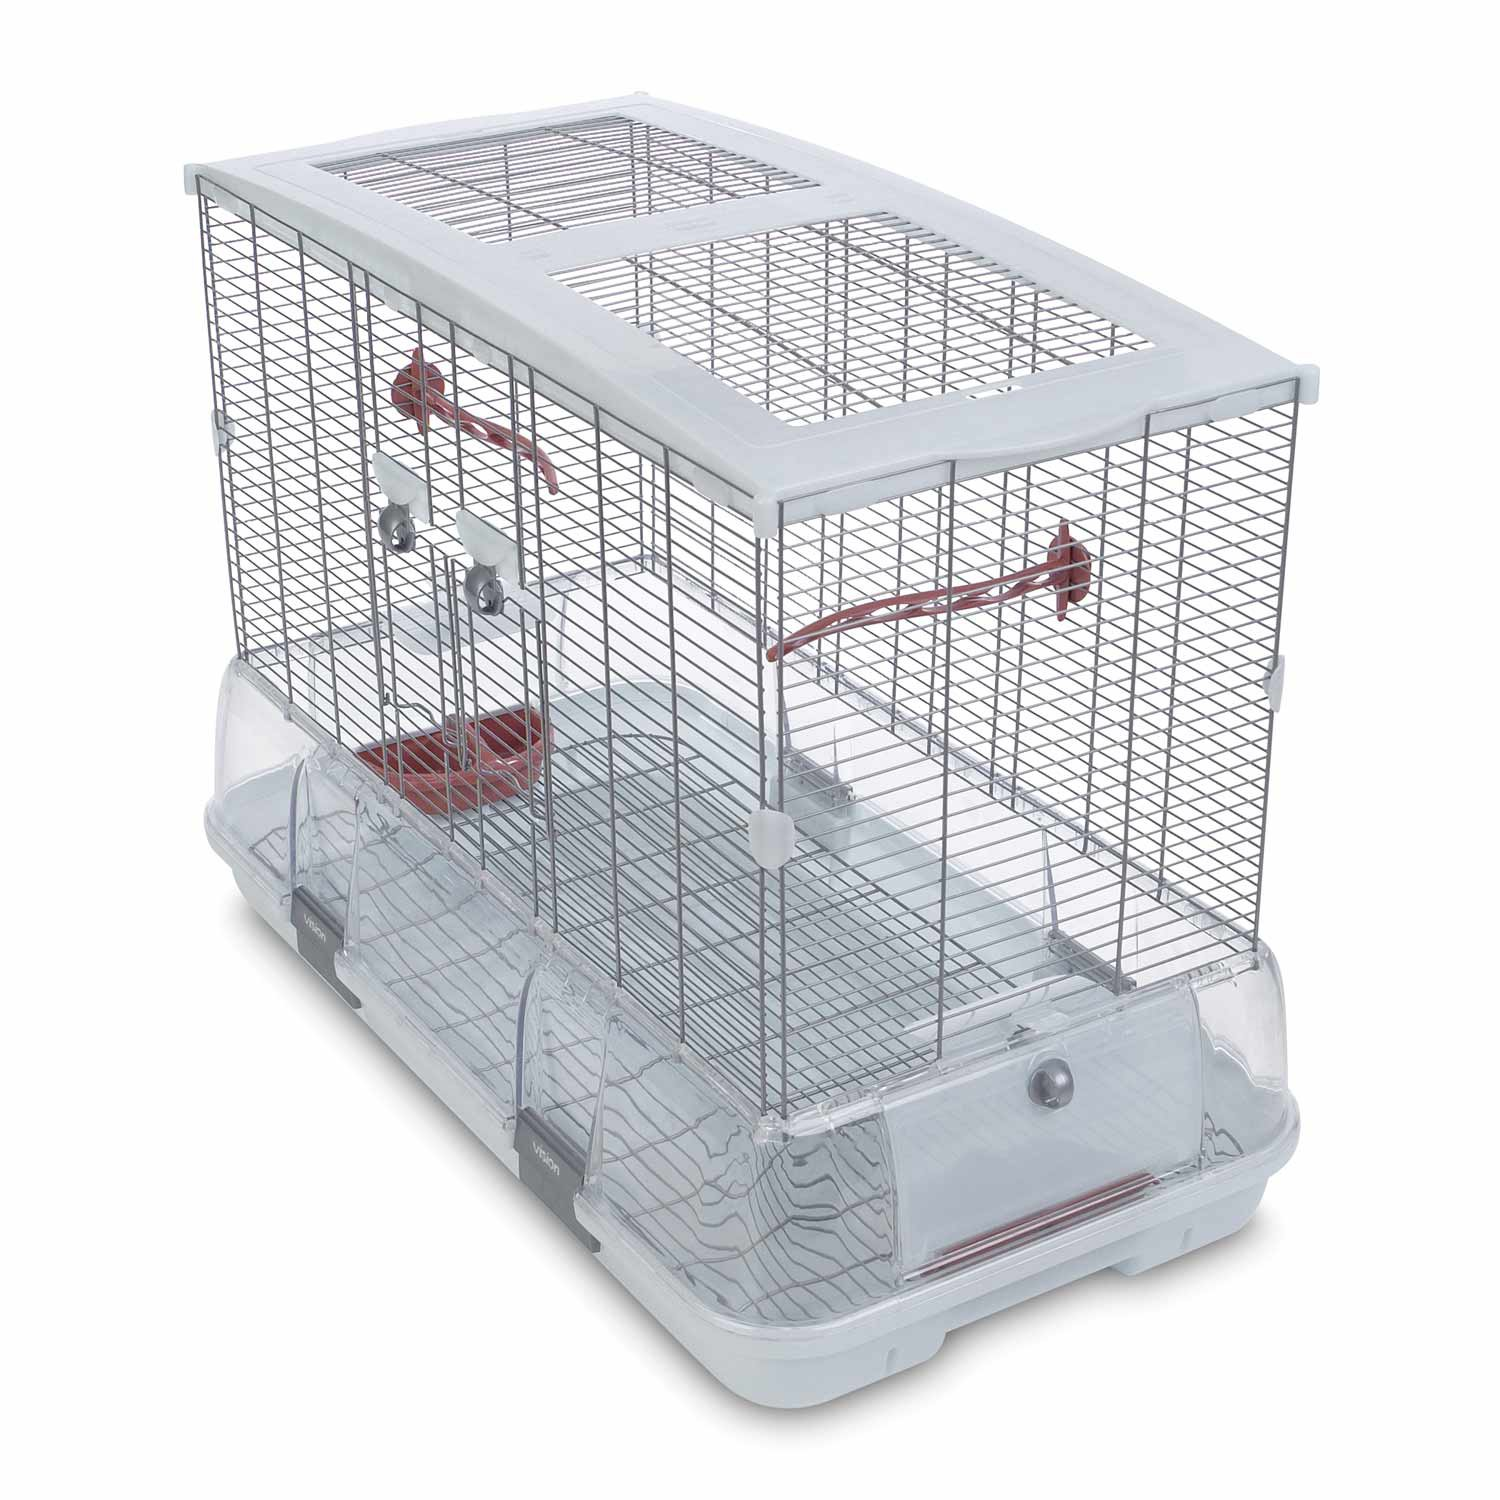 Hagen Vision Bird Cage for Canaries Large